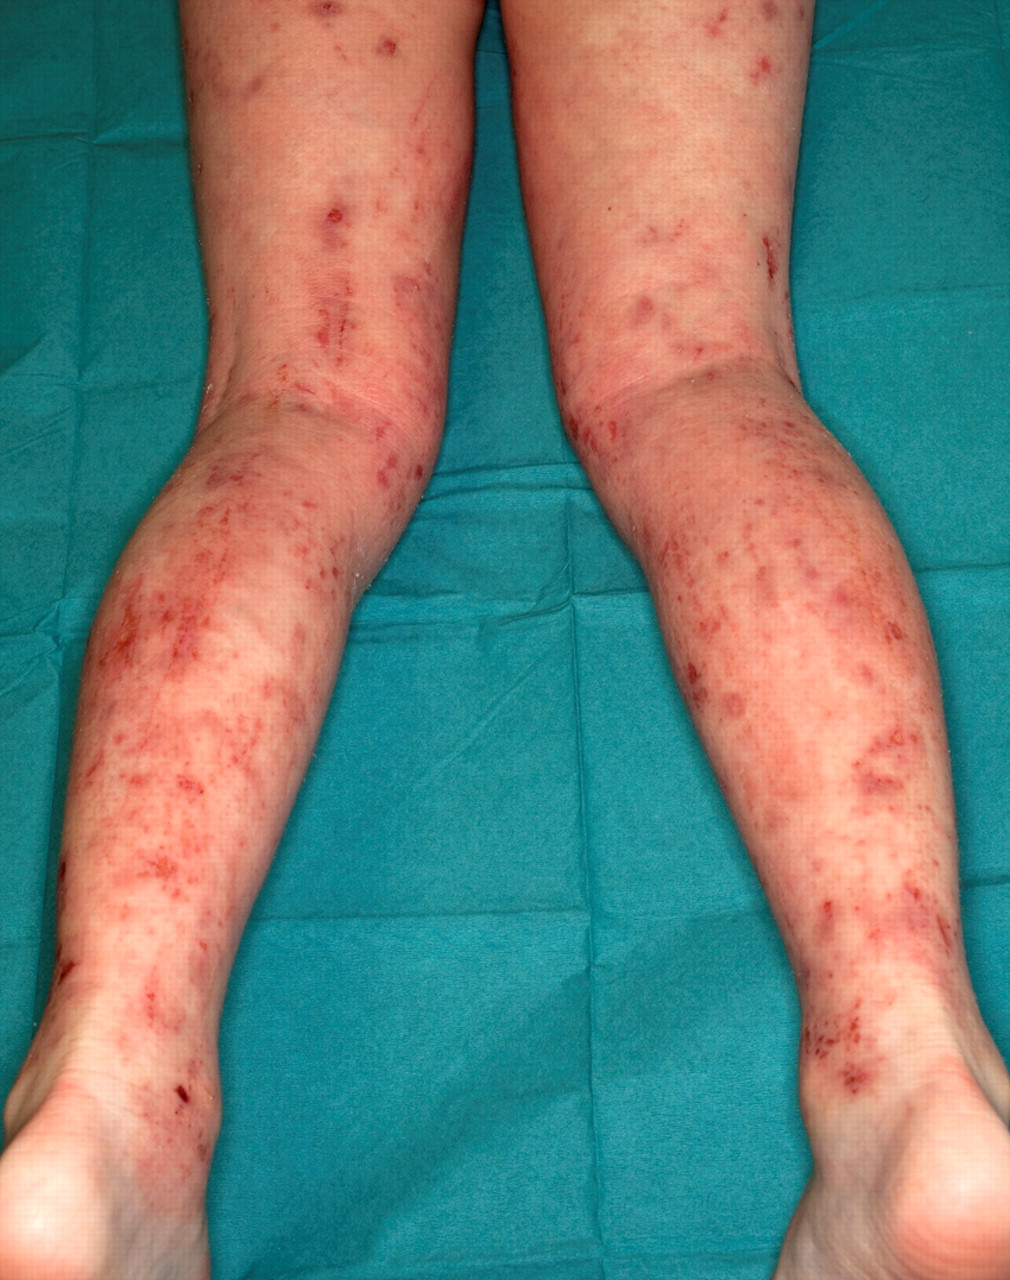 Management Of Difficult And Severe Eczema In Childhood